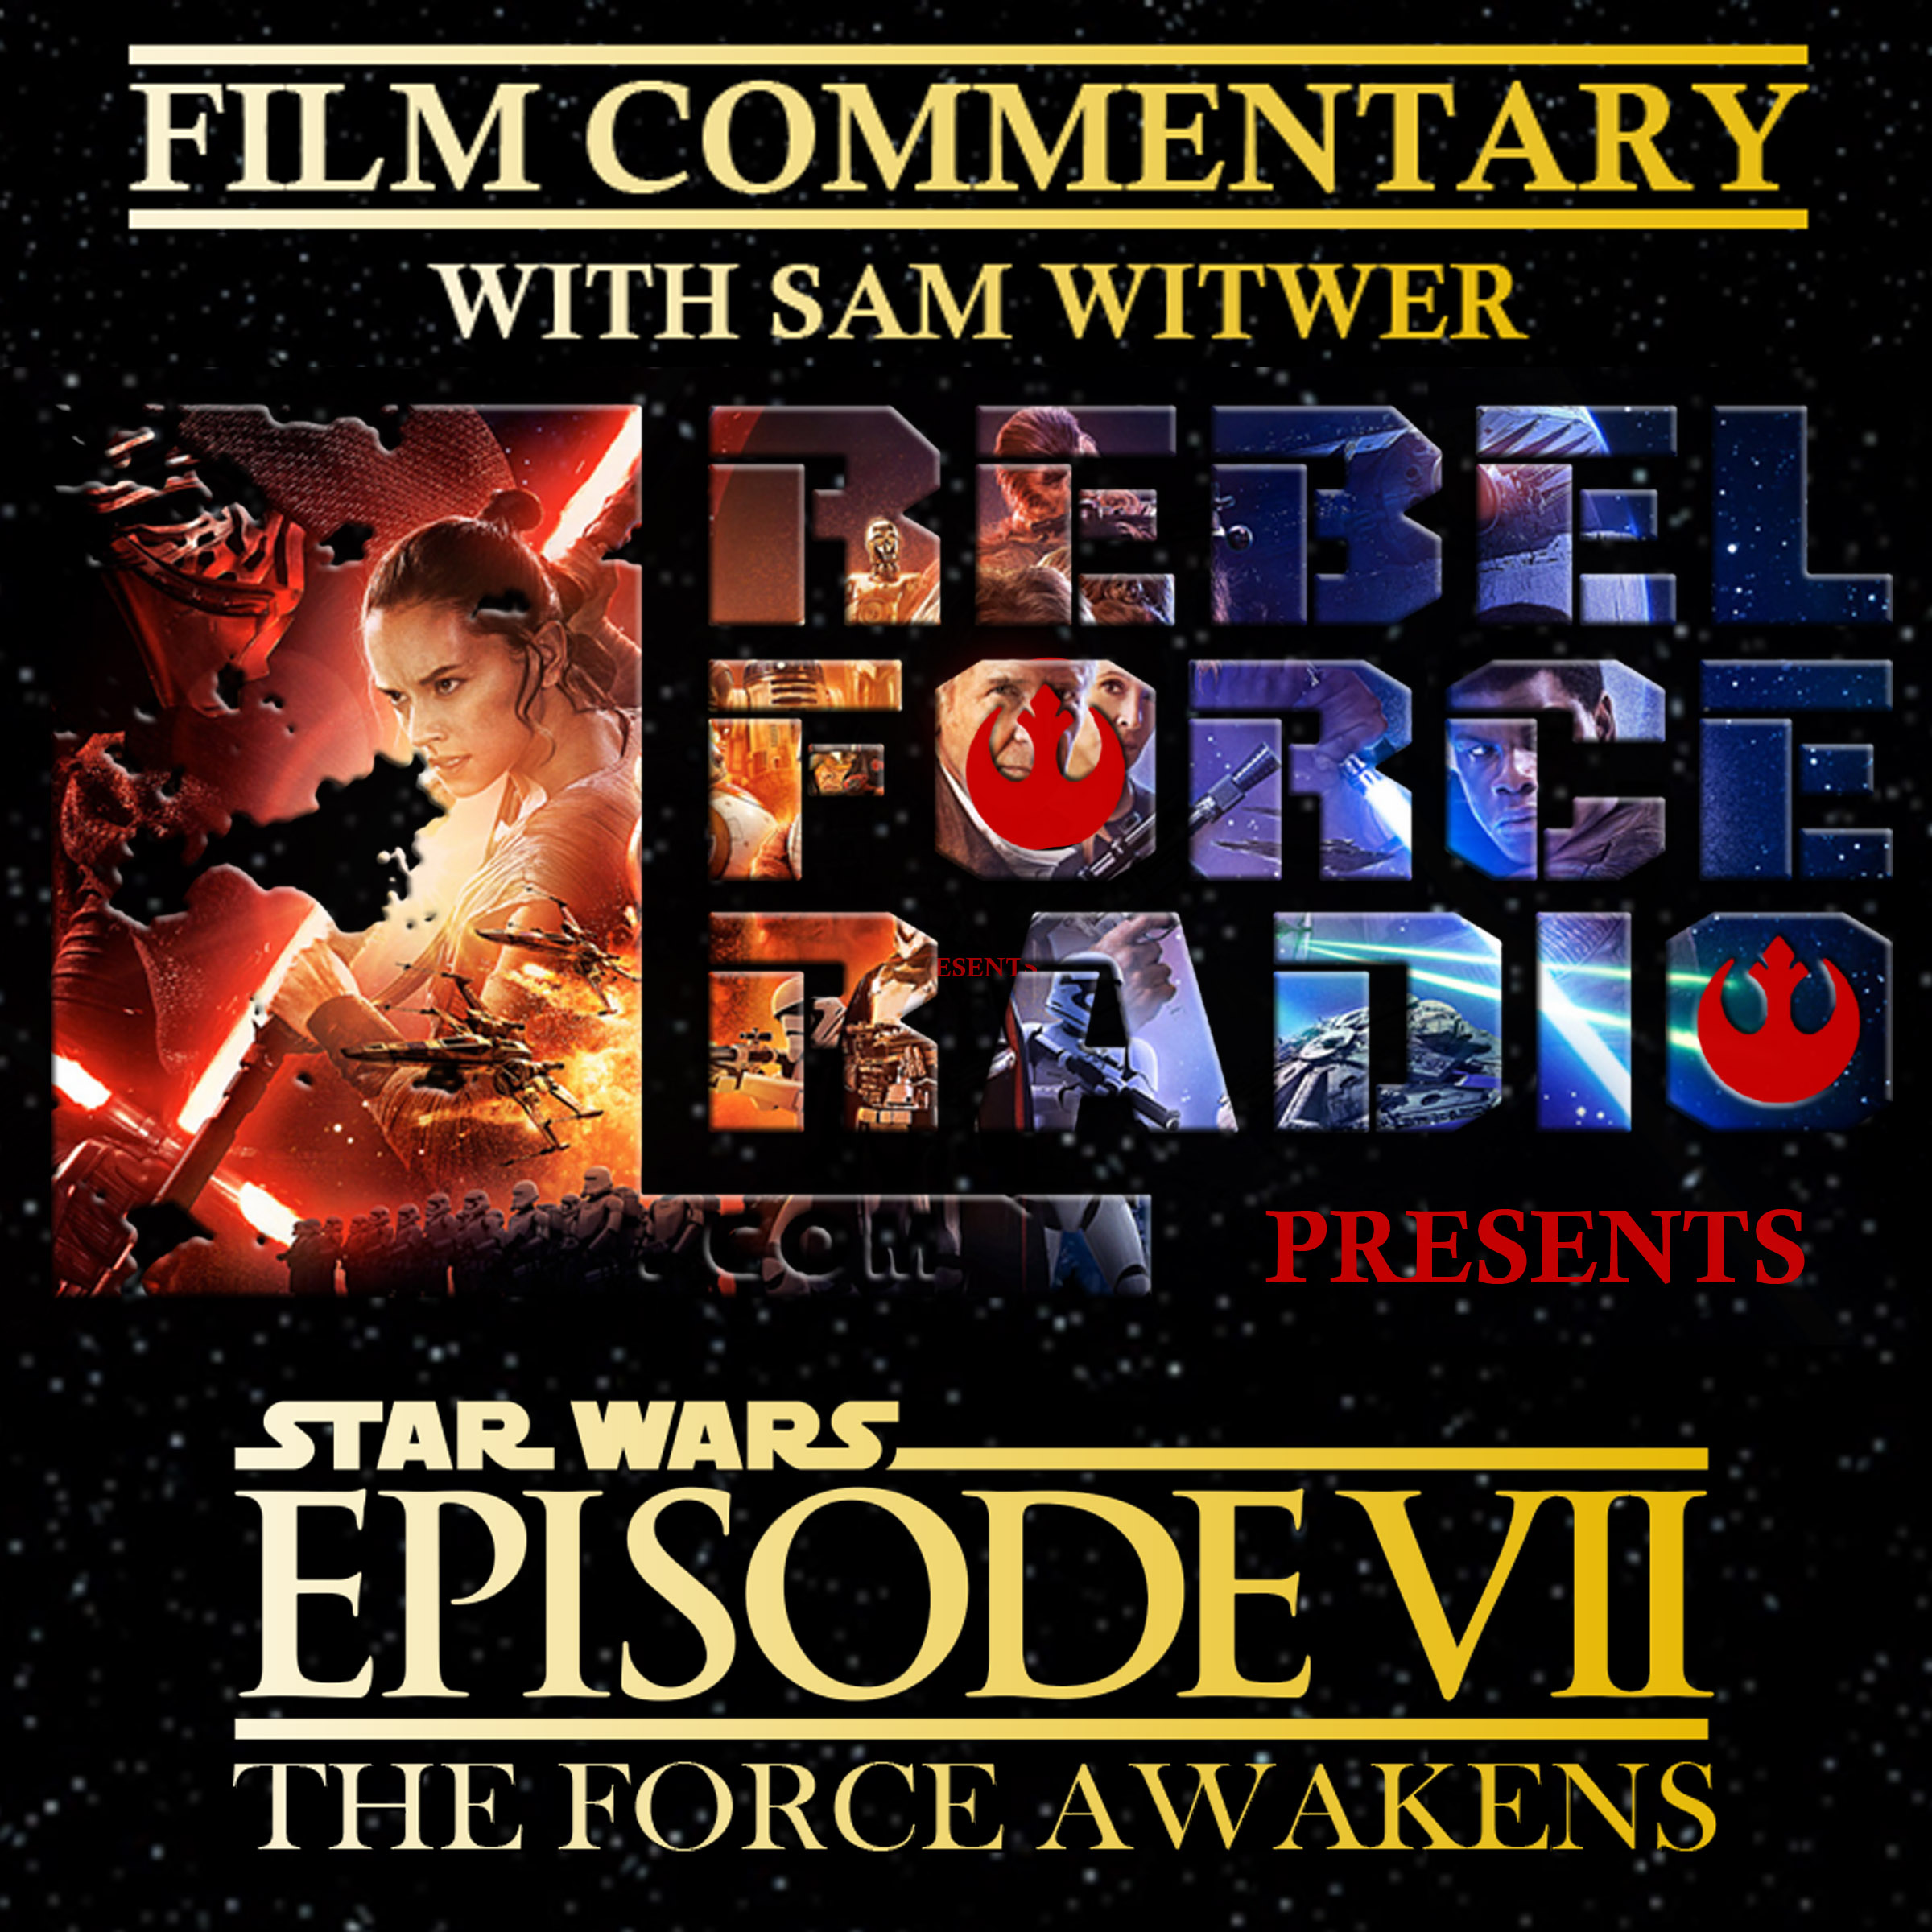 Film Commentary with Sam Witwer: The Force Awakens